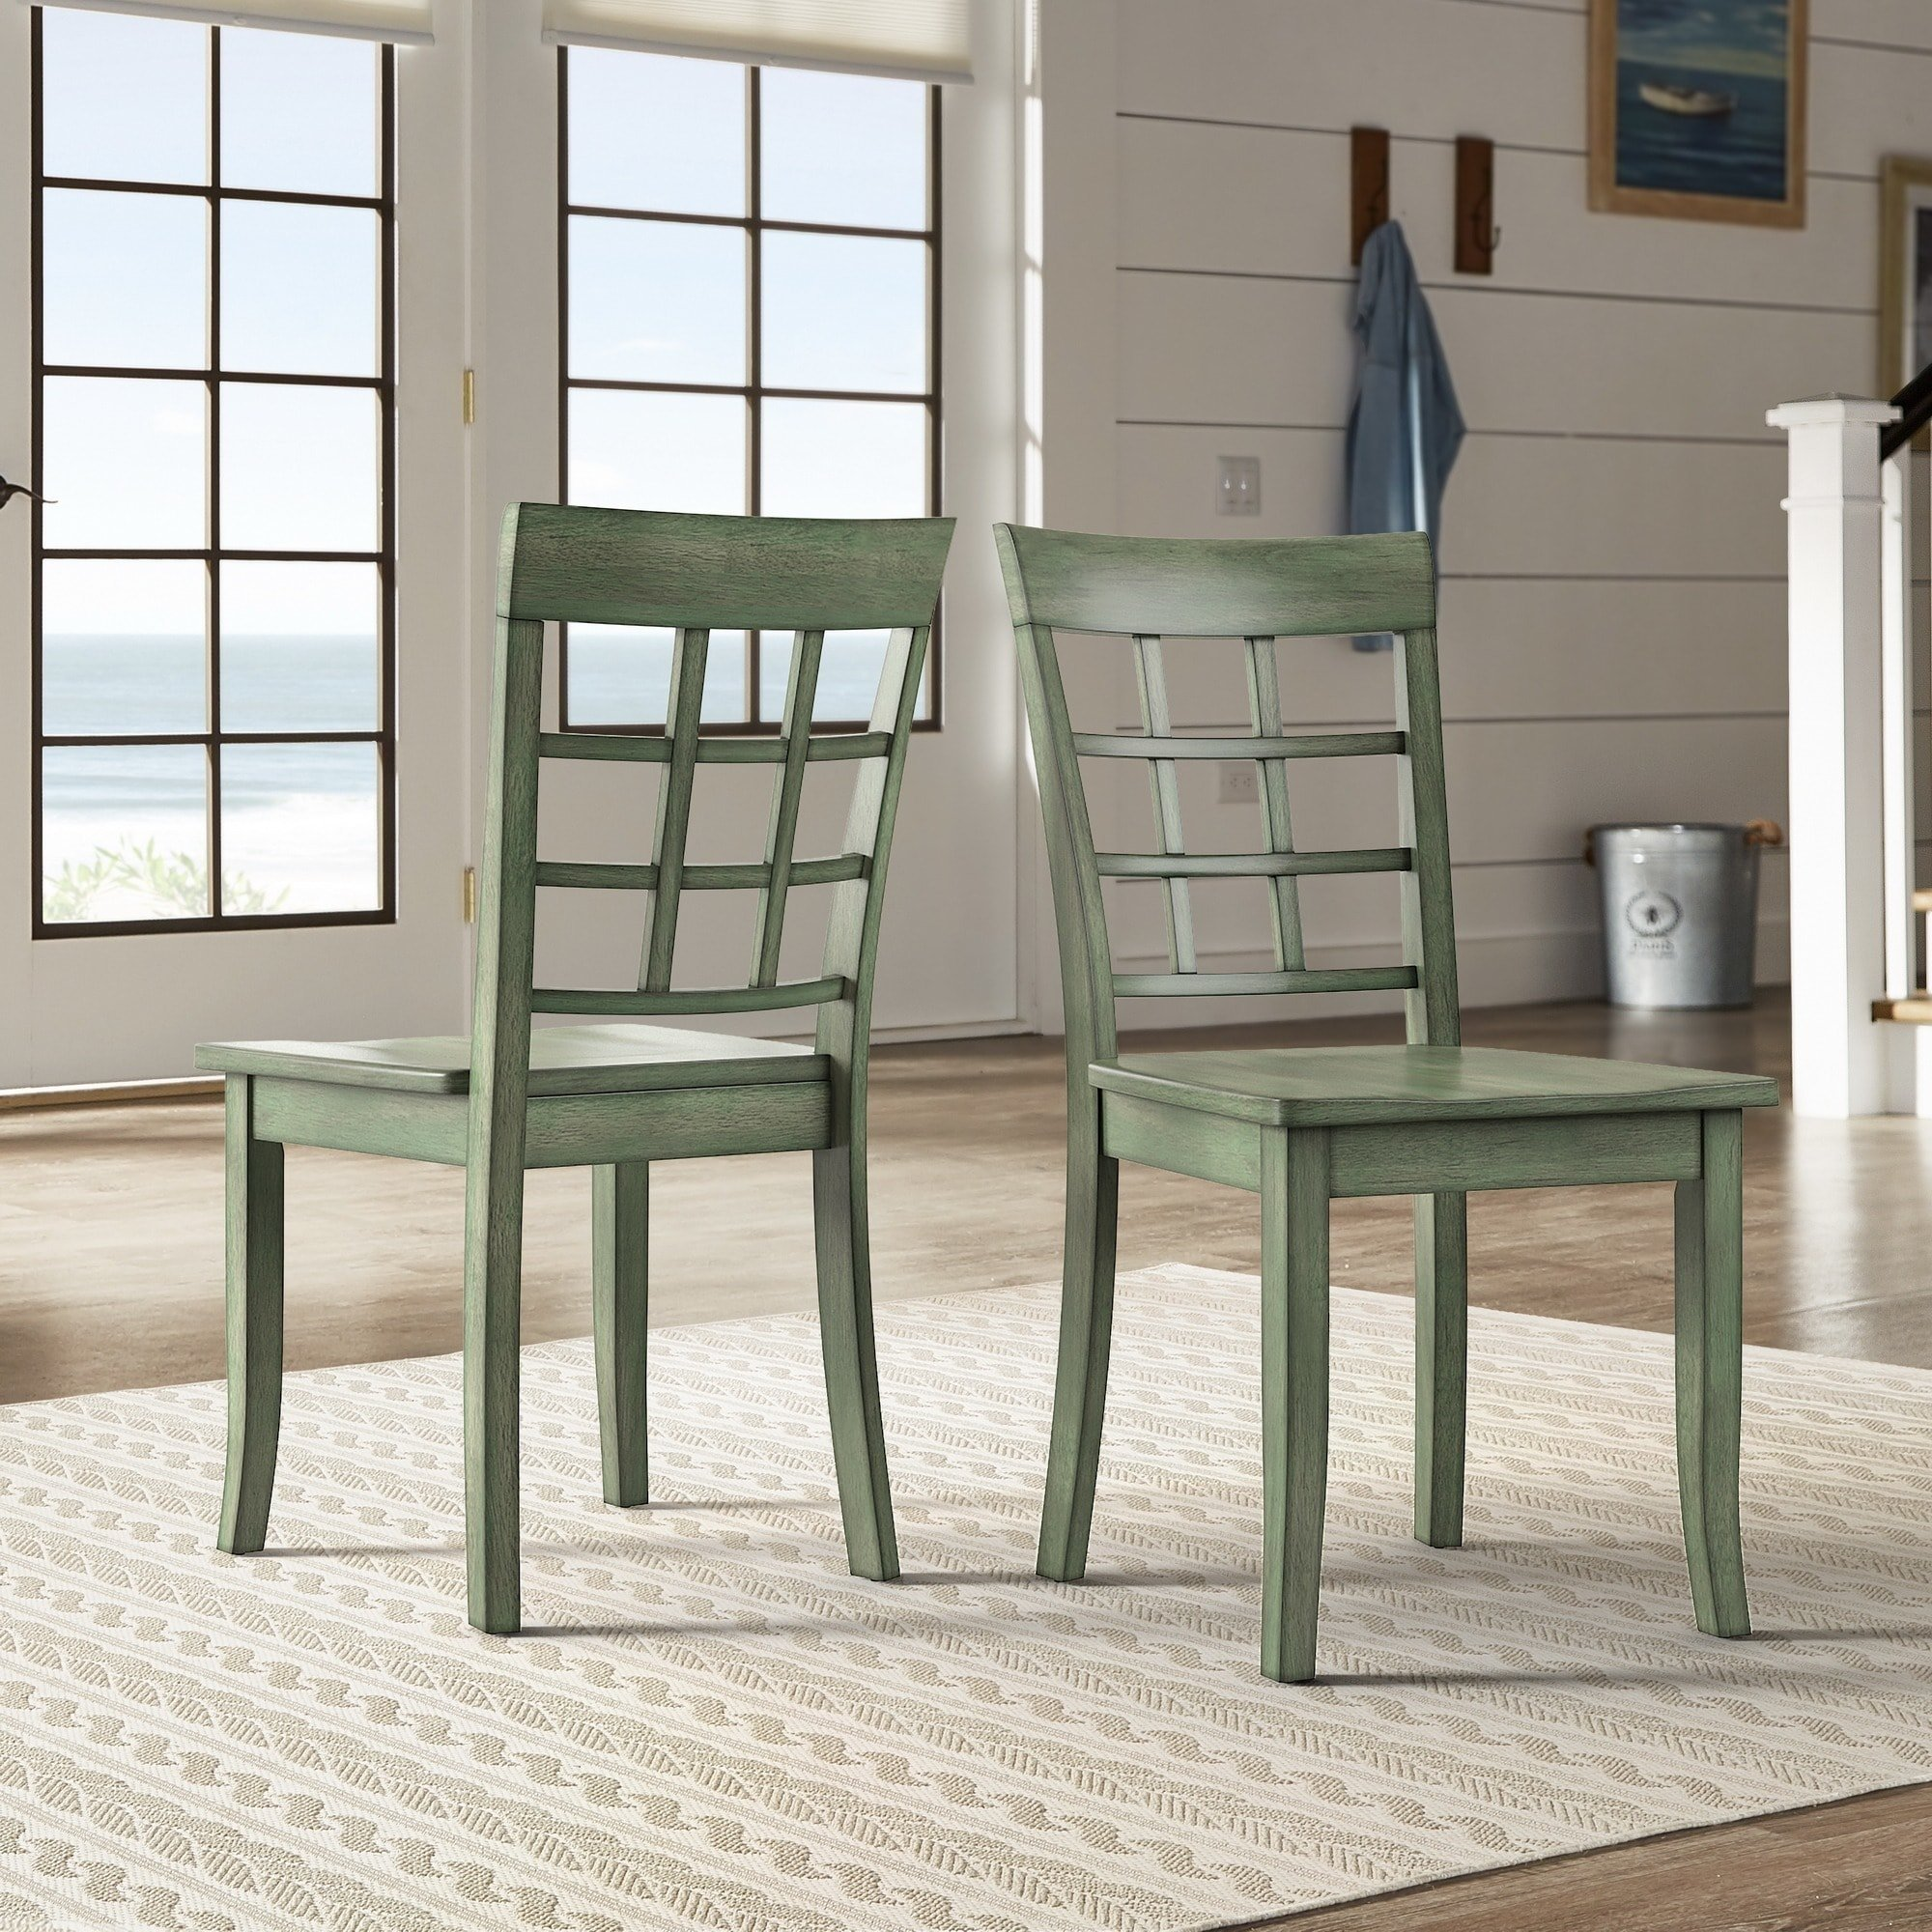 iNSPIRE Q Wilmington II Window Back Wood Dining Side Chairs (Set of 2) from Classic Sage Antique, Green Finish